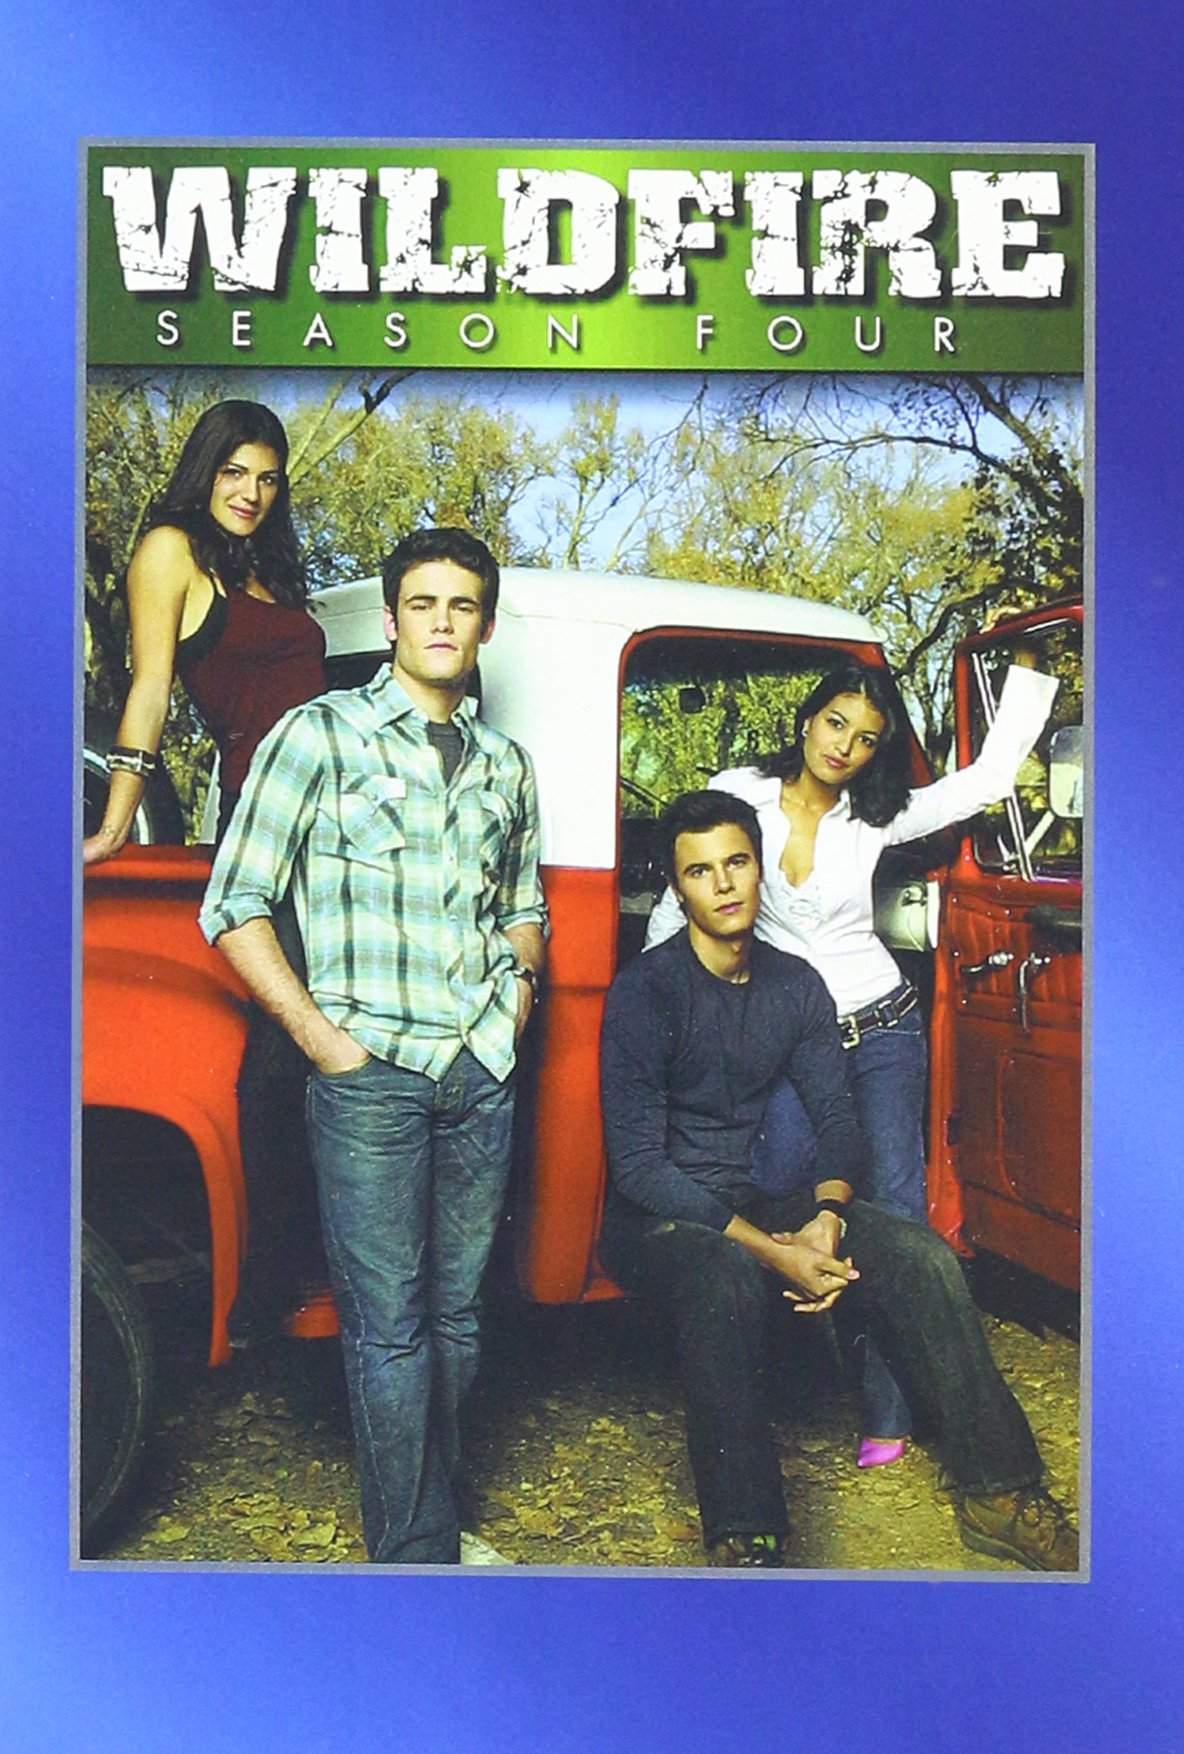 Wildfire TV Series Season 4, Disc 3